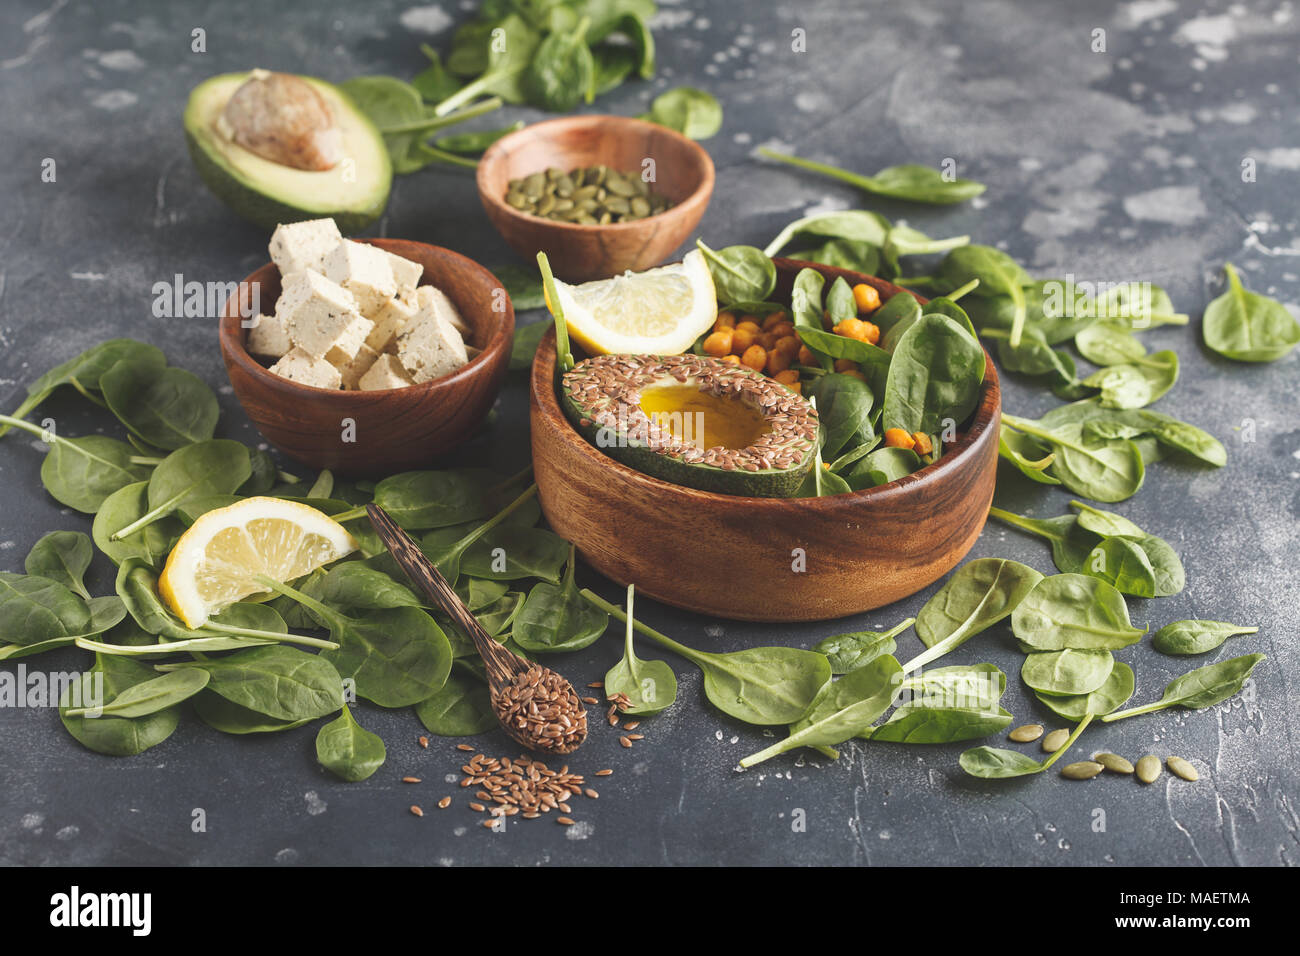 Healthy vegetarian salad with tofu, chickpeas, avocado and sunflower seeds. Healthy vegan food concept. Dark background, copy space. Stock Photo